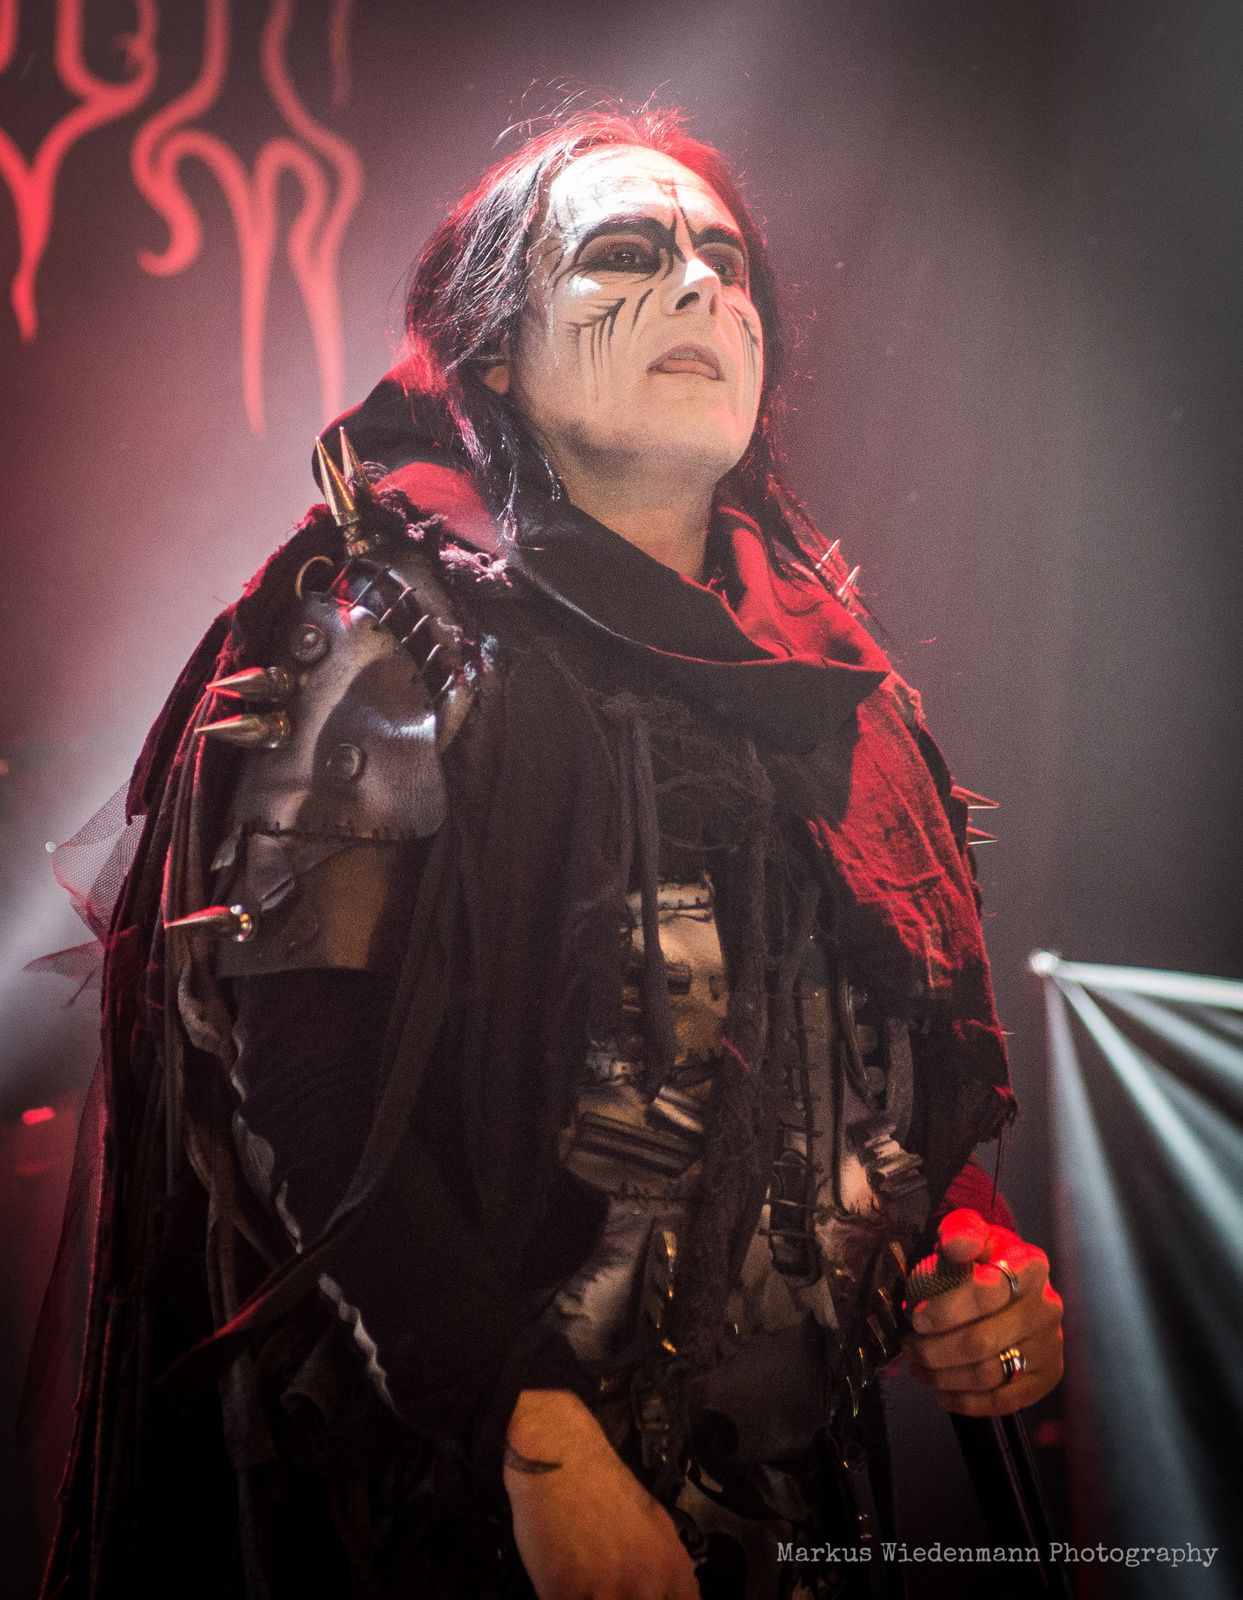 CRADLE OF FILTH and MOONSPELL photos from Haarlem show